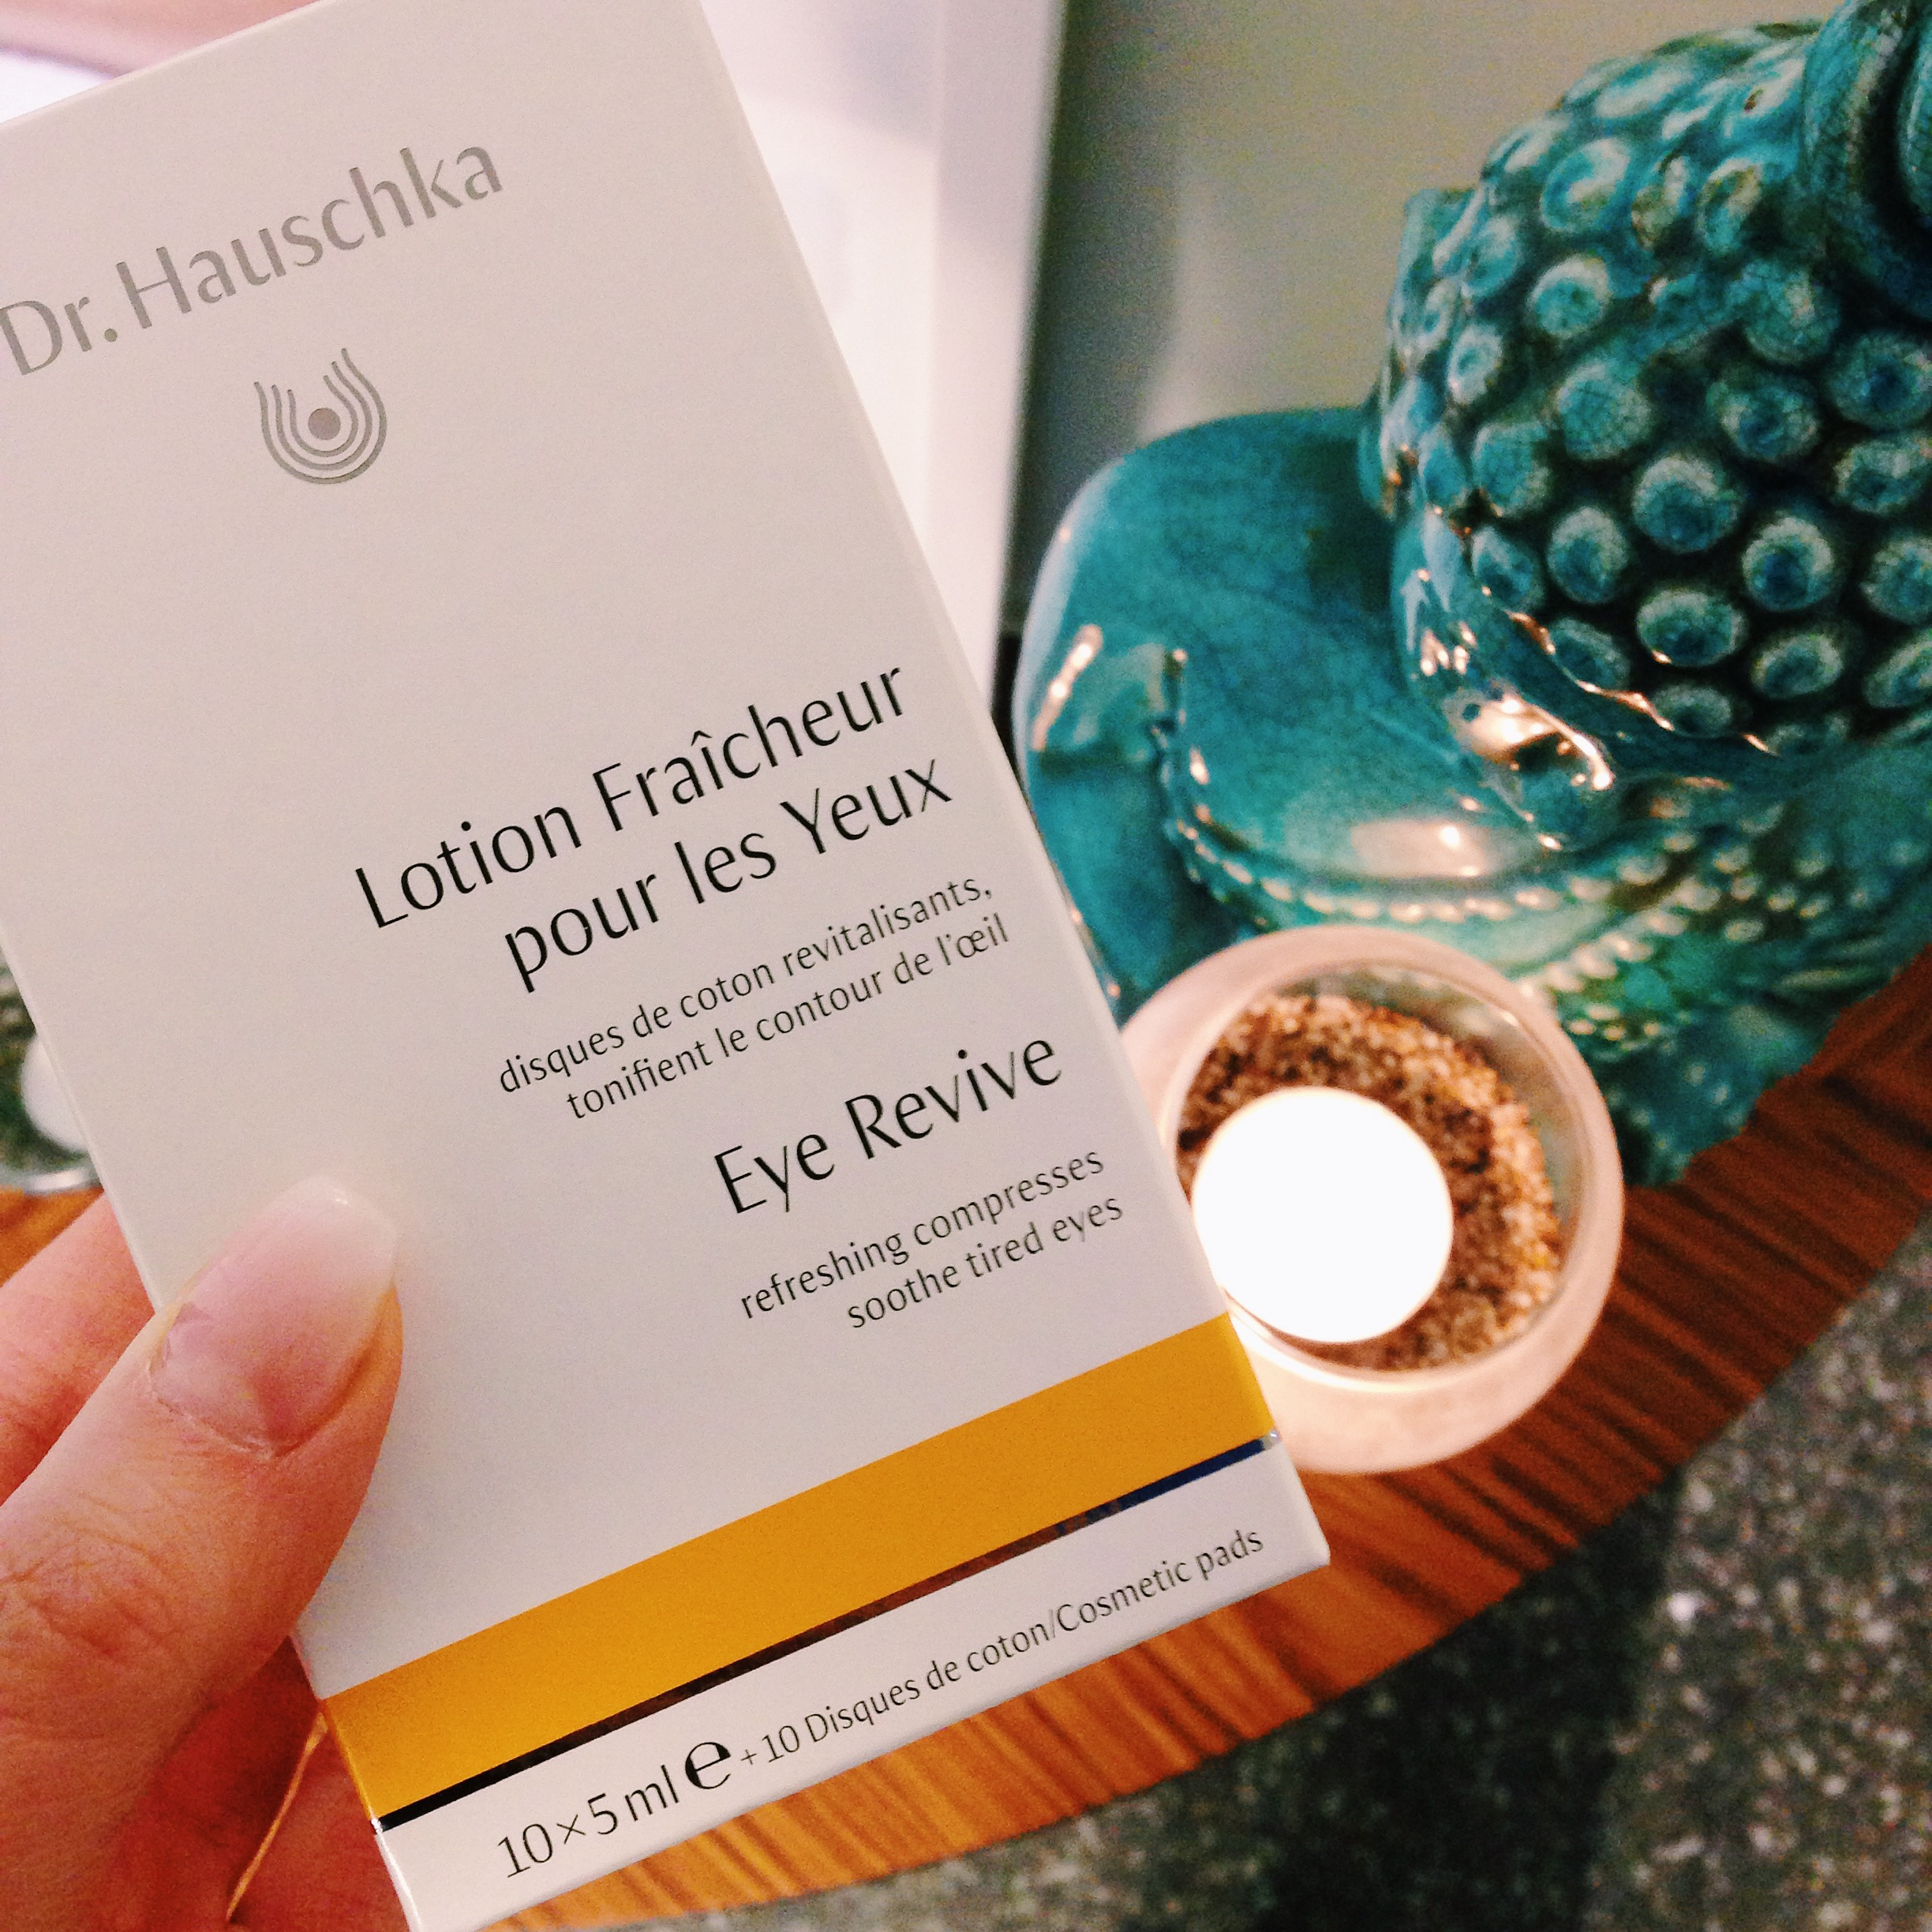 Ögontröst Eye Revive - Dr. Hauschka